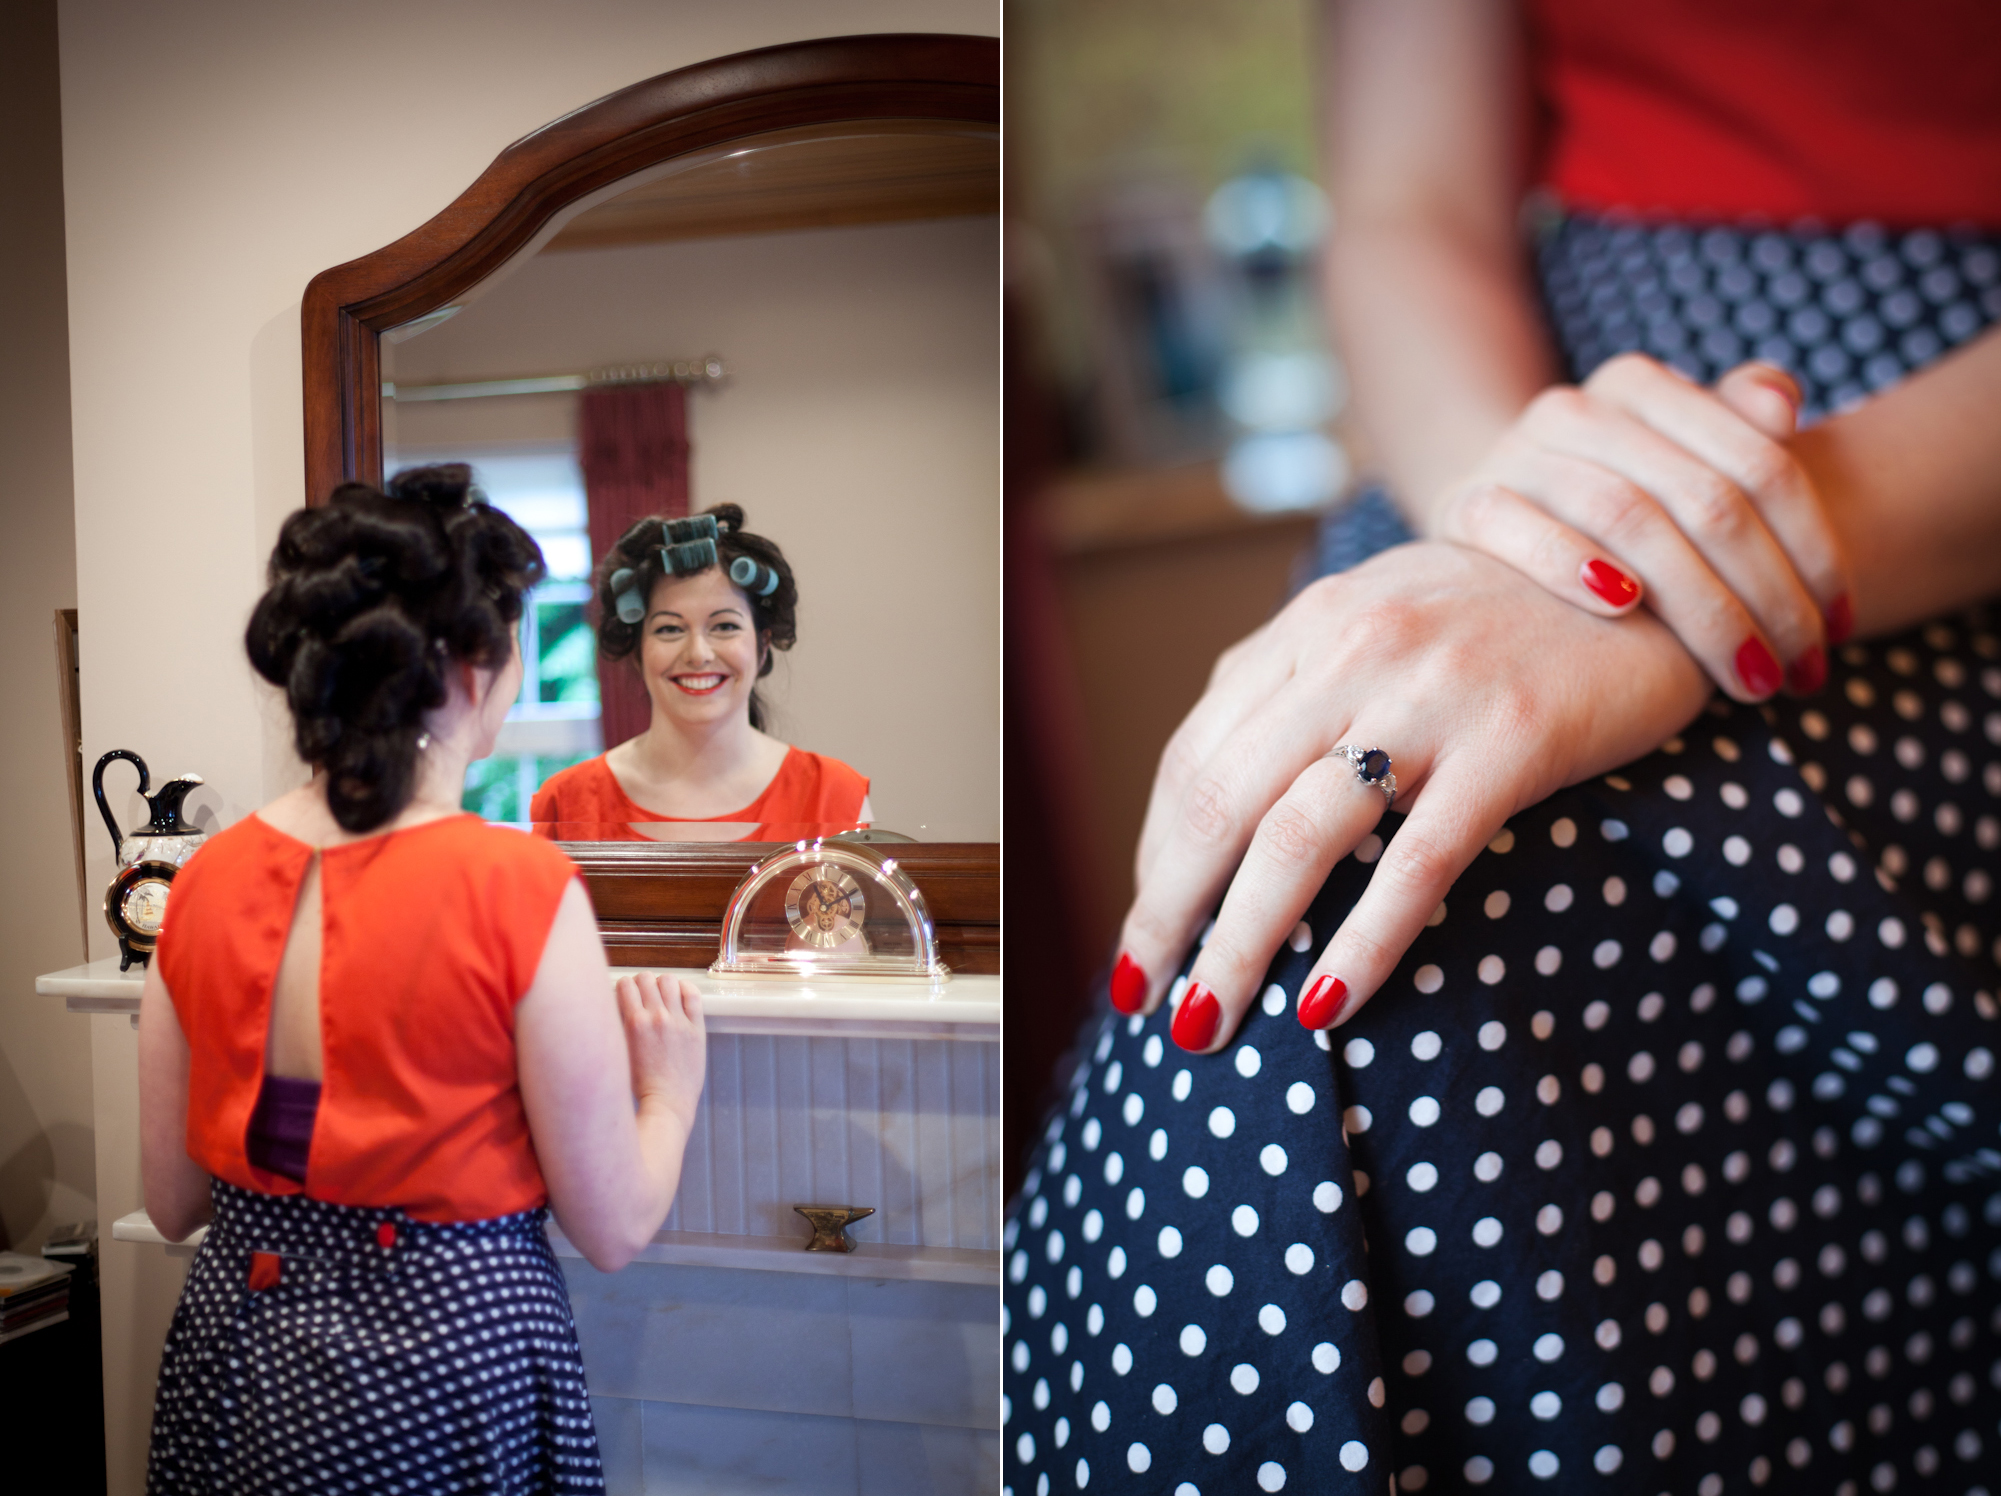 affordable wedding photography, budget wedding photography Dublin, Budget wedding photography Ireland, Polka dot bride, Sapphire engagement ring